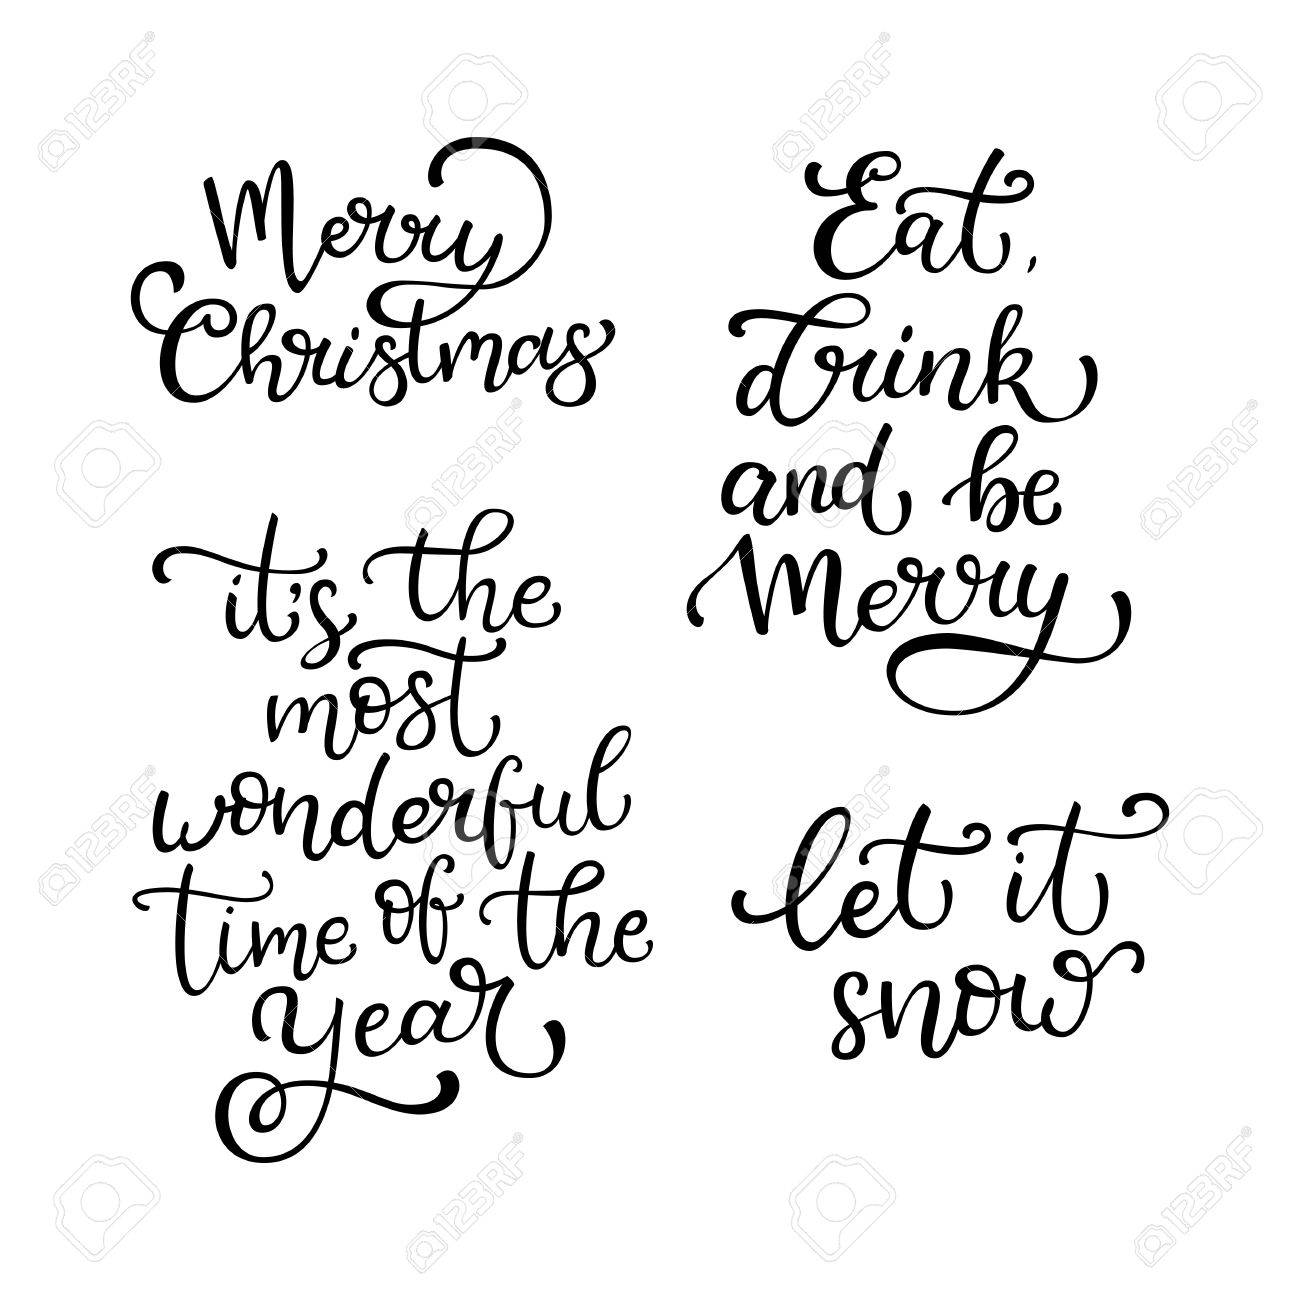 Quotes Christmas Set Of Hand Drawn Vector Quotesmerry Christmas.let It Snow